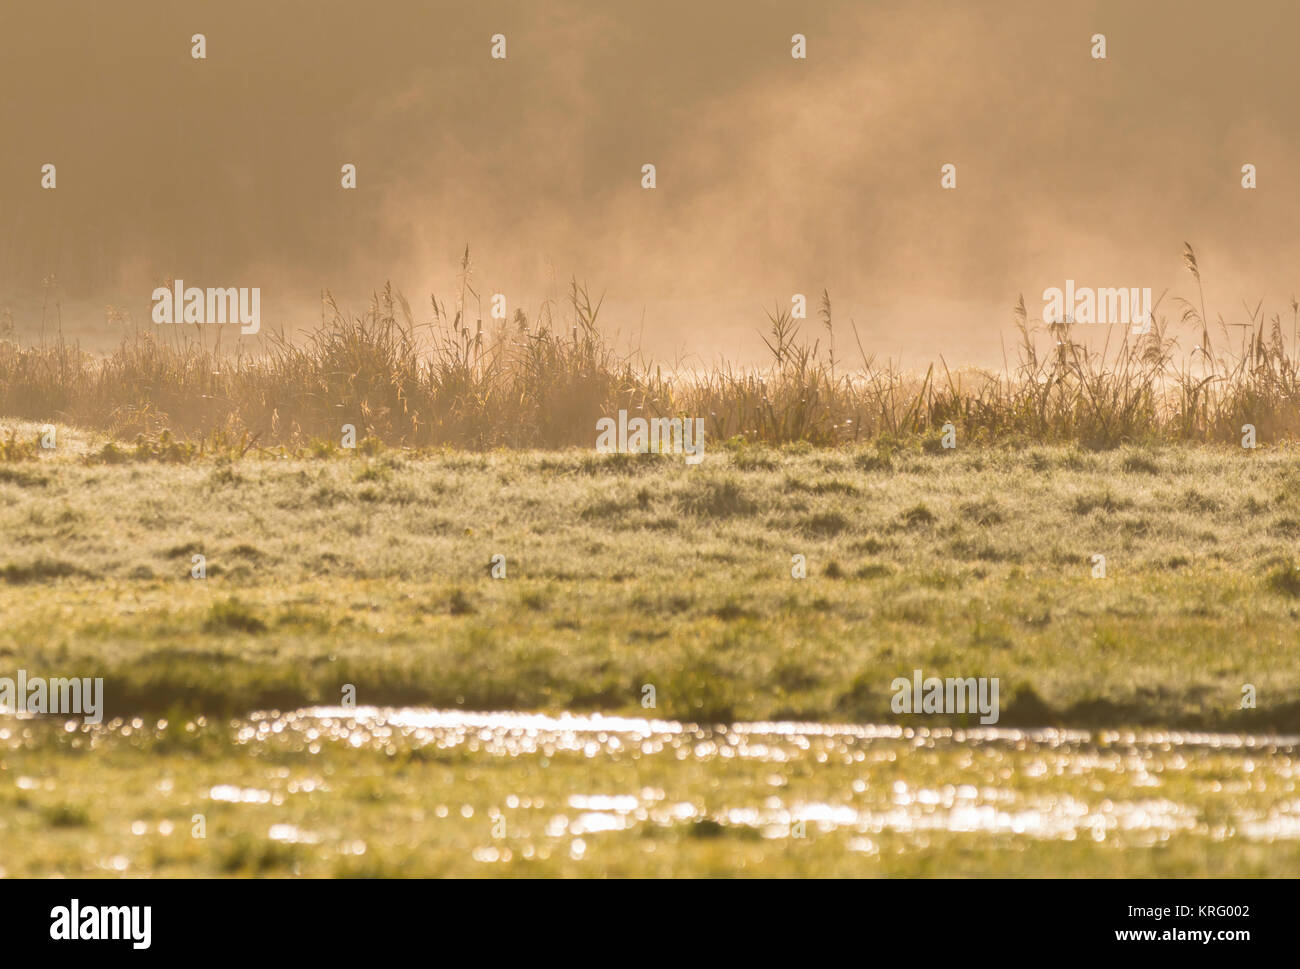 Mist rising from melting frost in a field as the morning sun warms grass, in Winter in the UK. - Stock Image